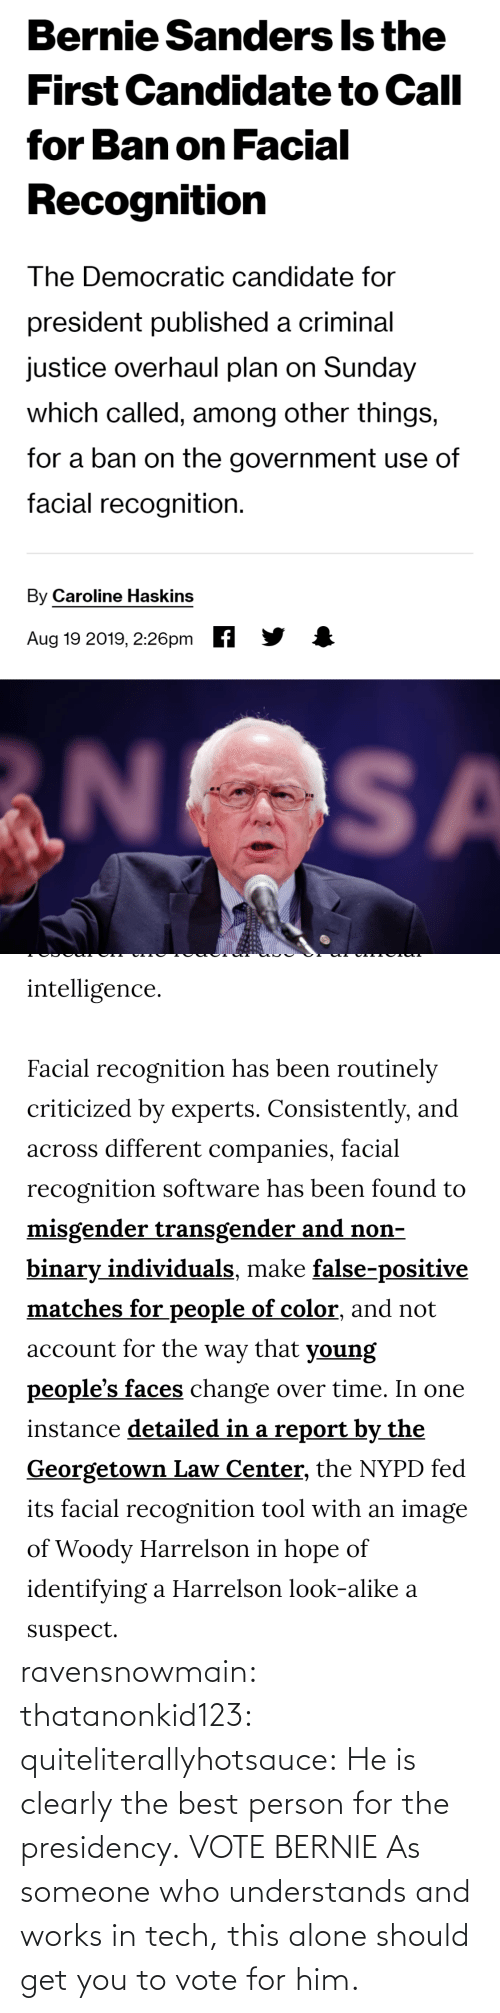 Someone Who: ravensnowmain: thatanonkid123:  quiteliterallyhotsauce:   He is clearly the best person for the presidency.     VOTE BERNIE  As someone who understands and works in tech, this alone should get you to vote for him.